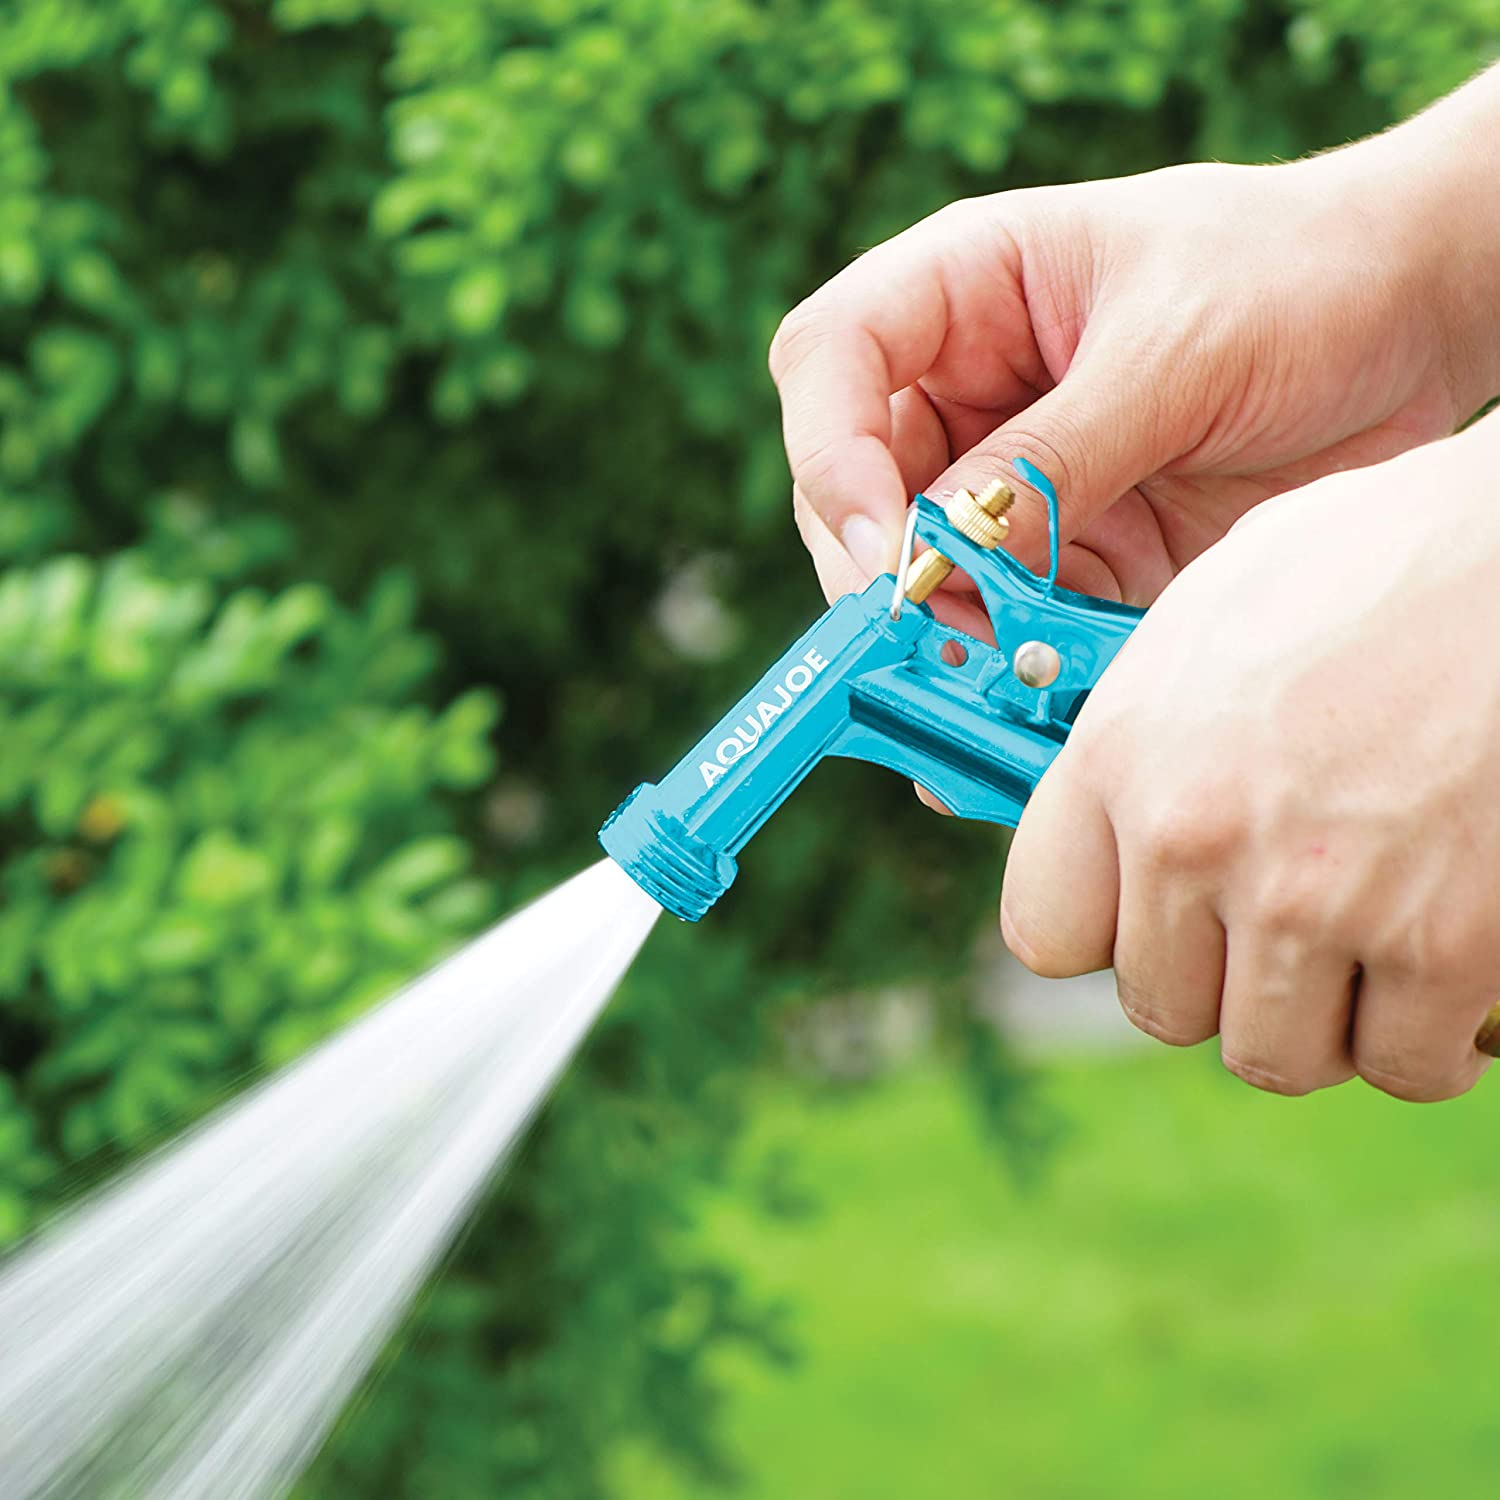 What to consider when buying a water hose nozzle?